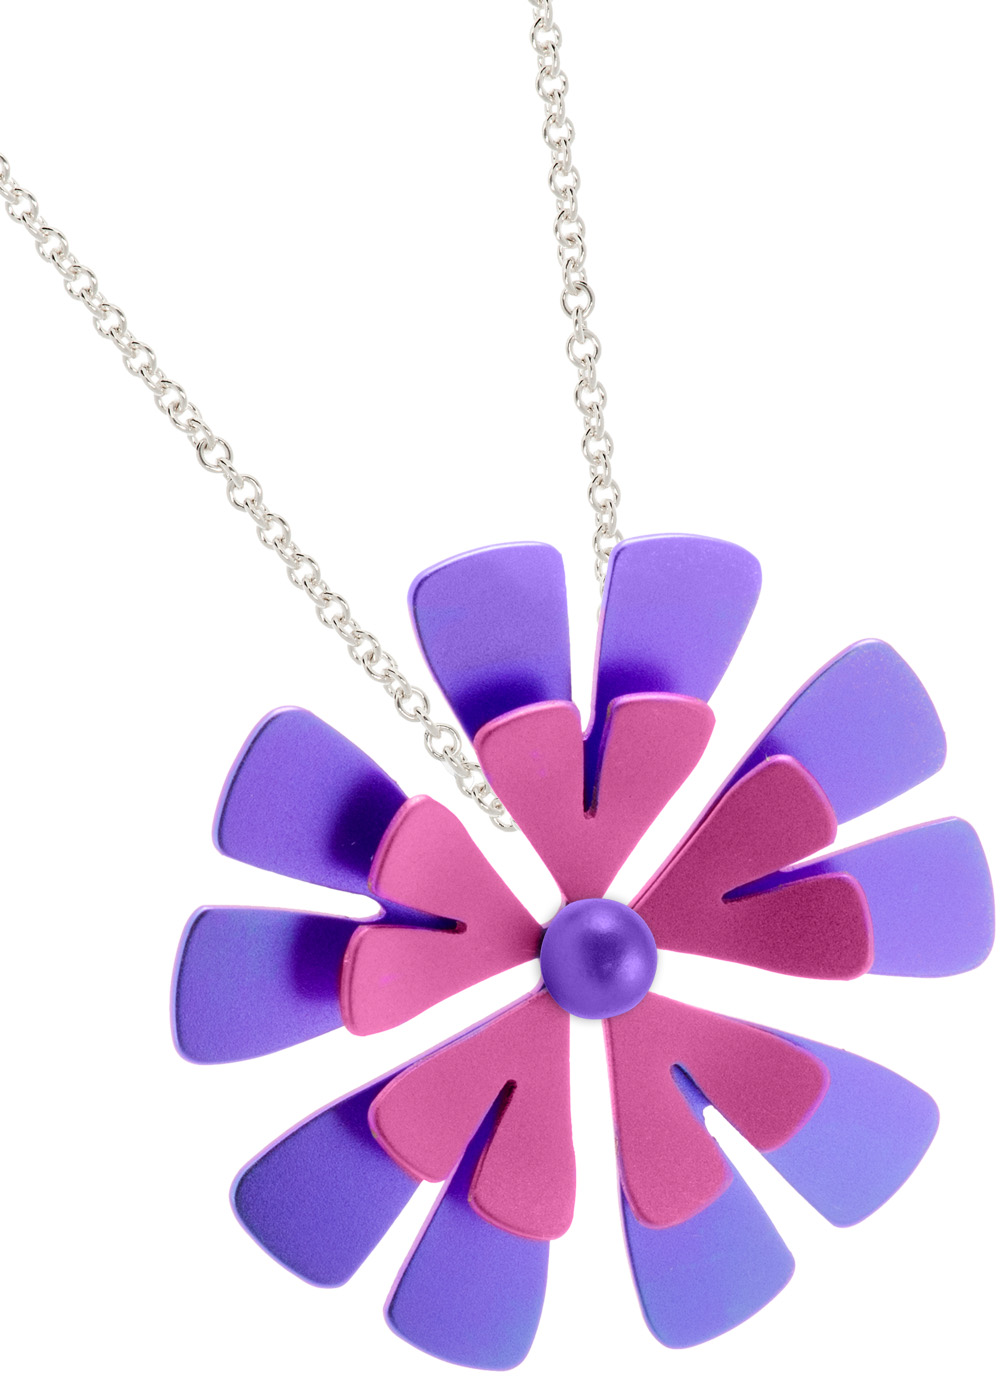 68334 - Titanium Flower pendant on silver chain